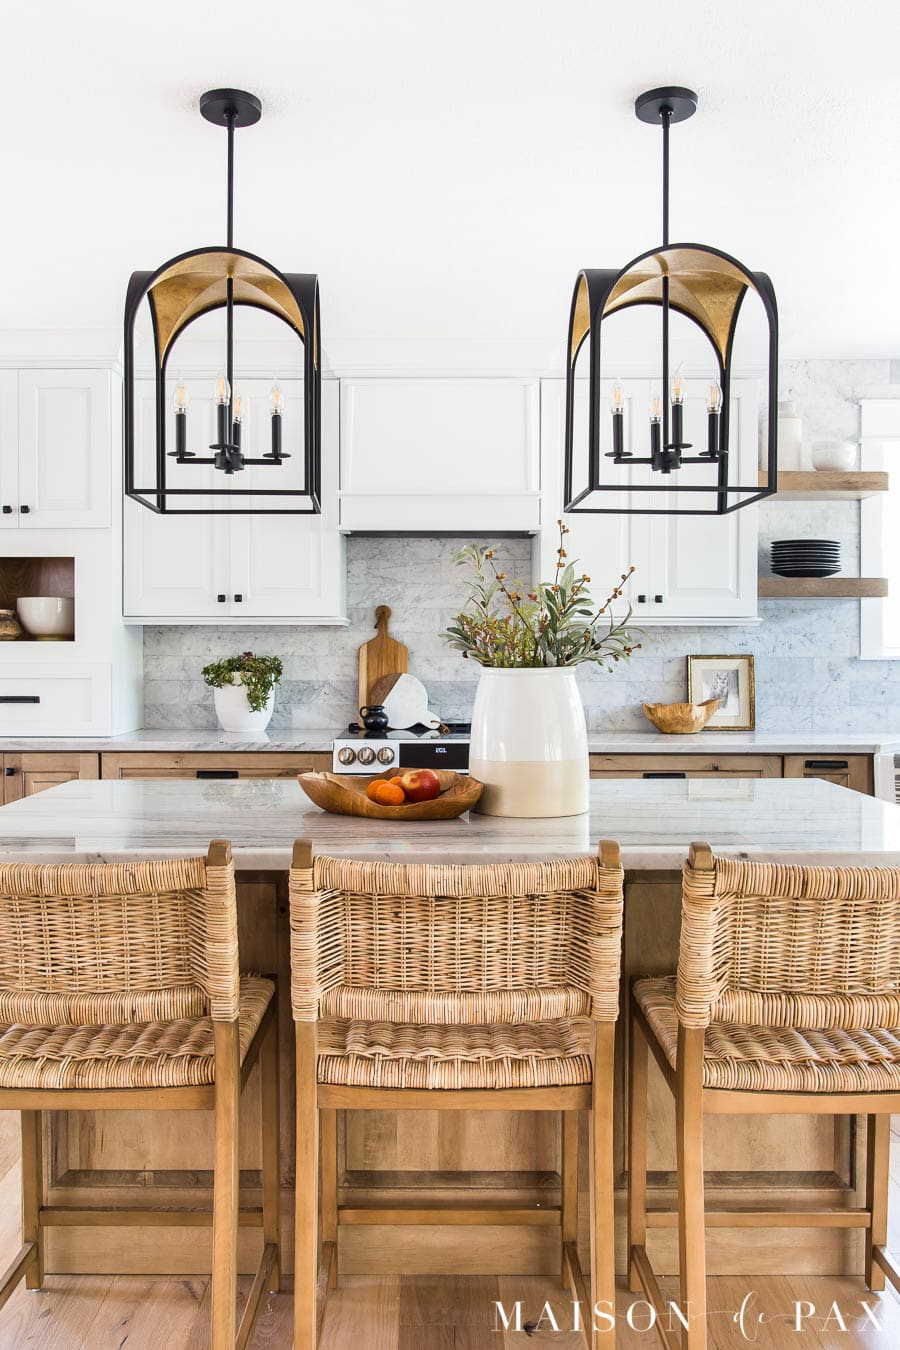 white and wood kitchen with black and gold lanterns over kitchen island